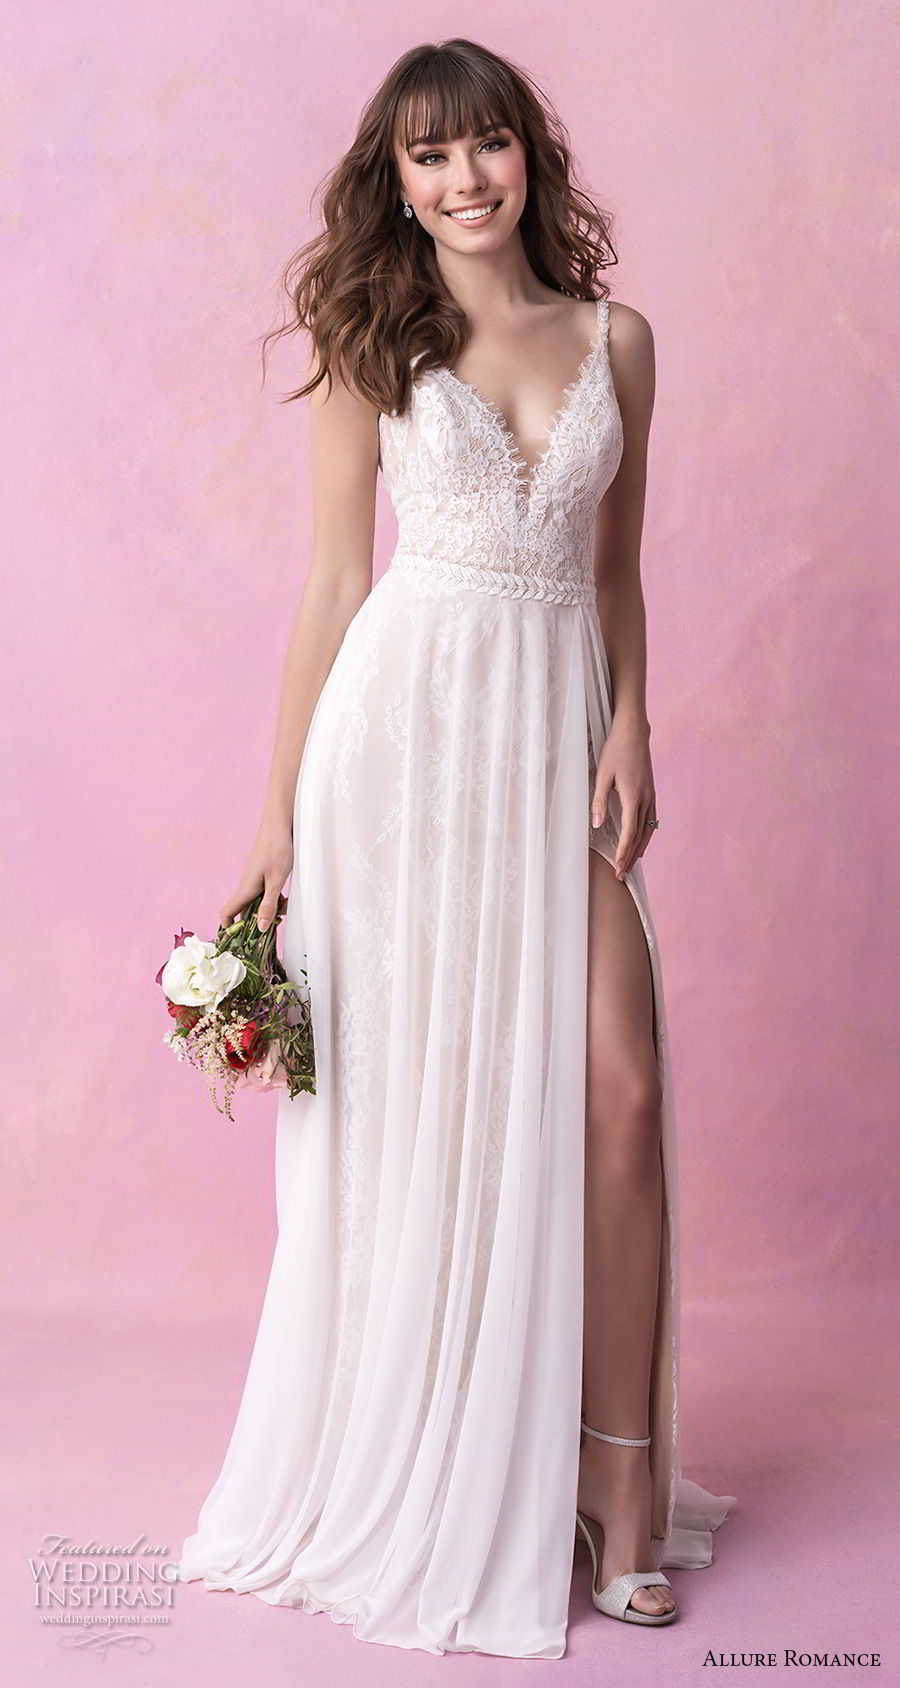 allure romance fall 2018 bridal sleeveless thin strap deep sweetheart neckline heavily embellished bodice slit skirt soft a  line wedding dress open scoop back chapel train (18) mv